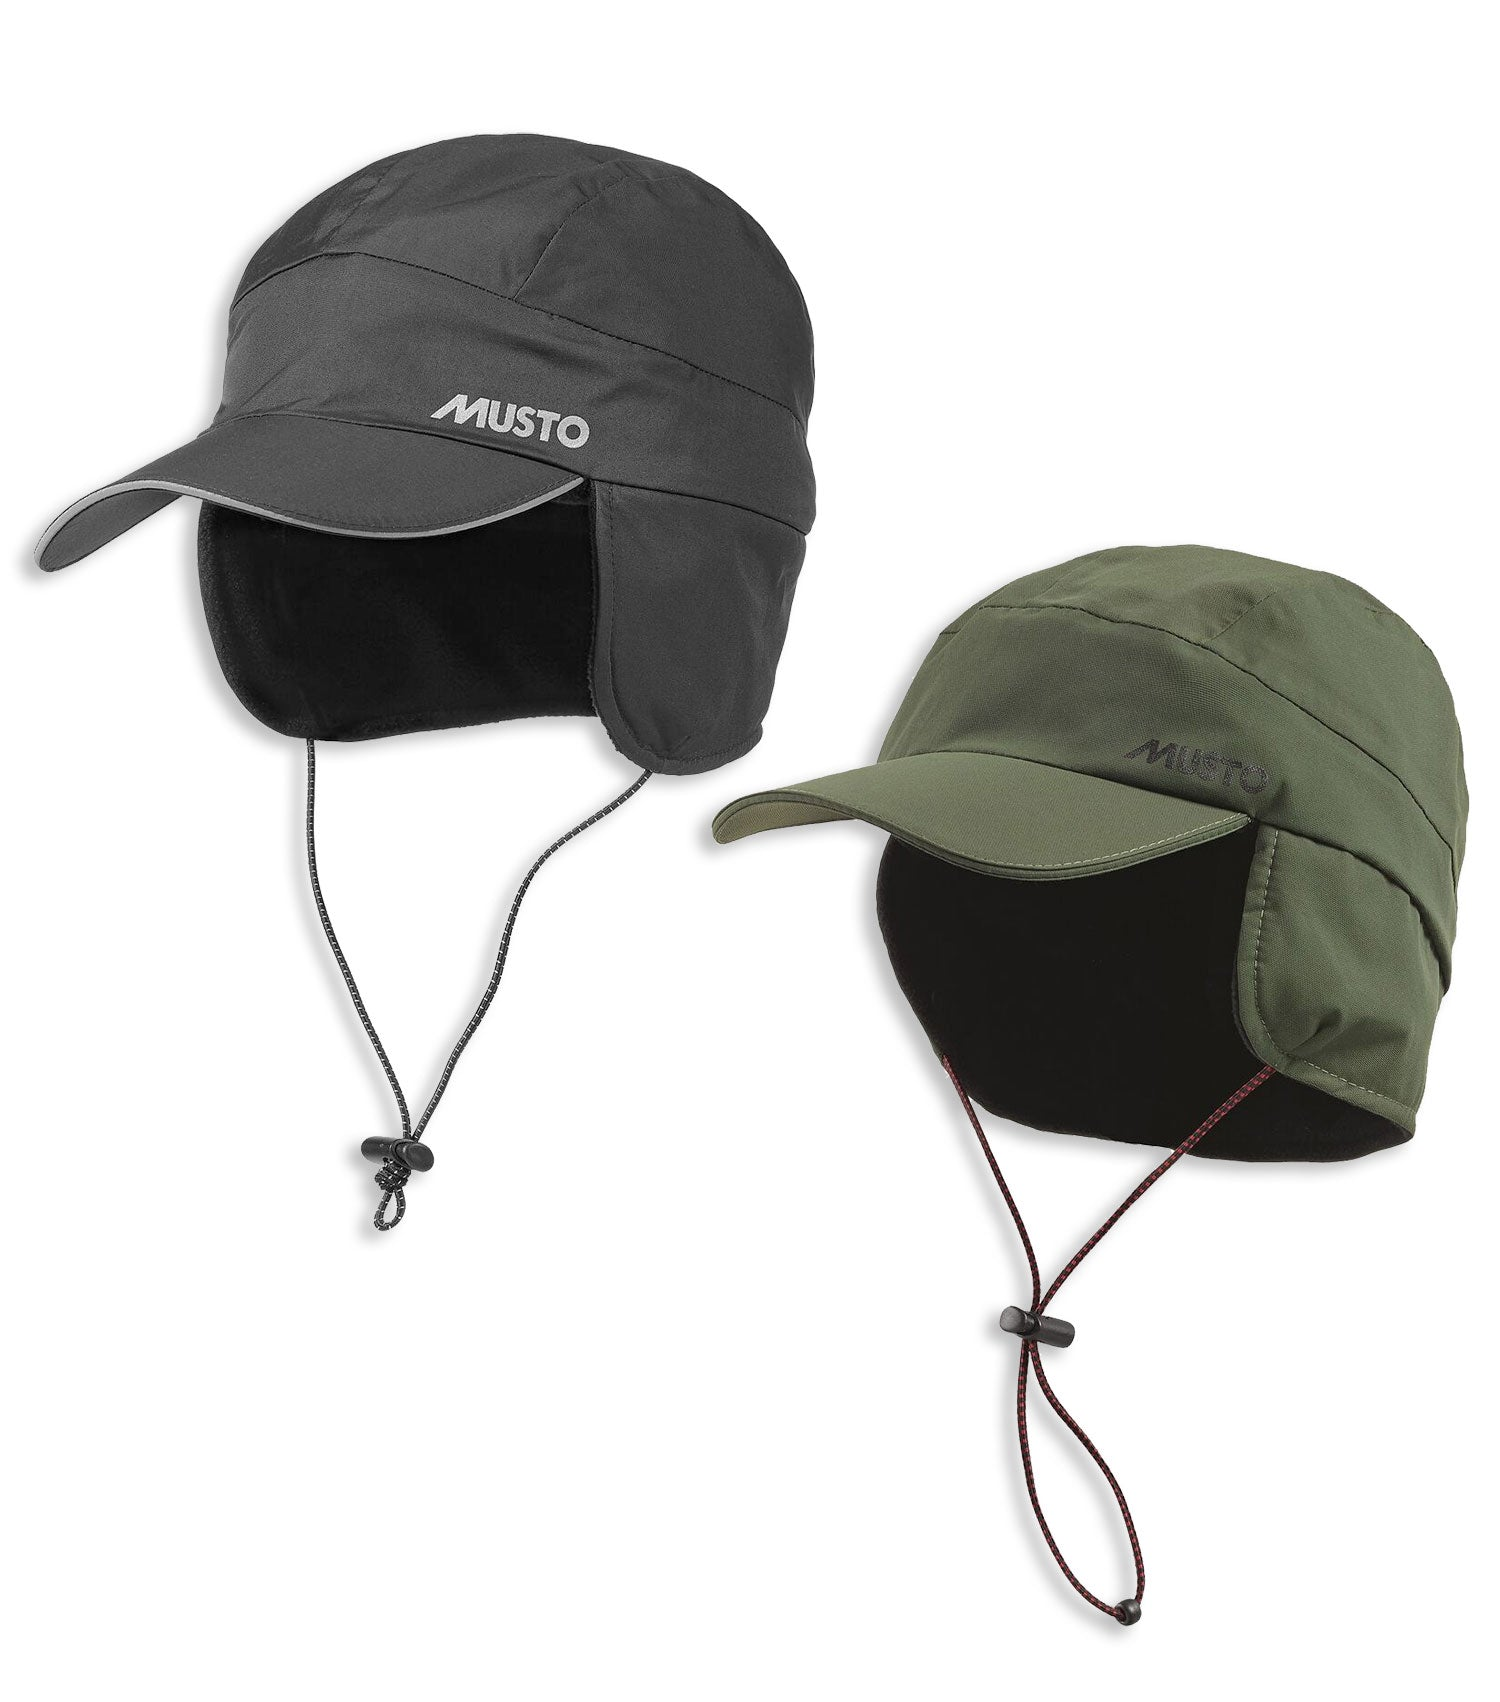 Musto Fleece Lined Waterproof Cap | Black, Green